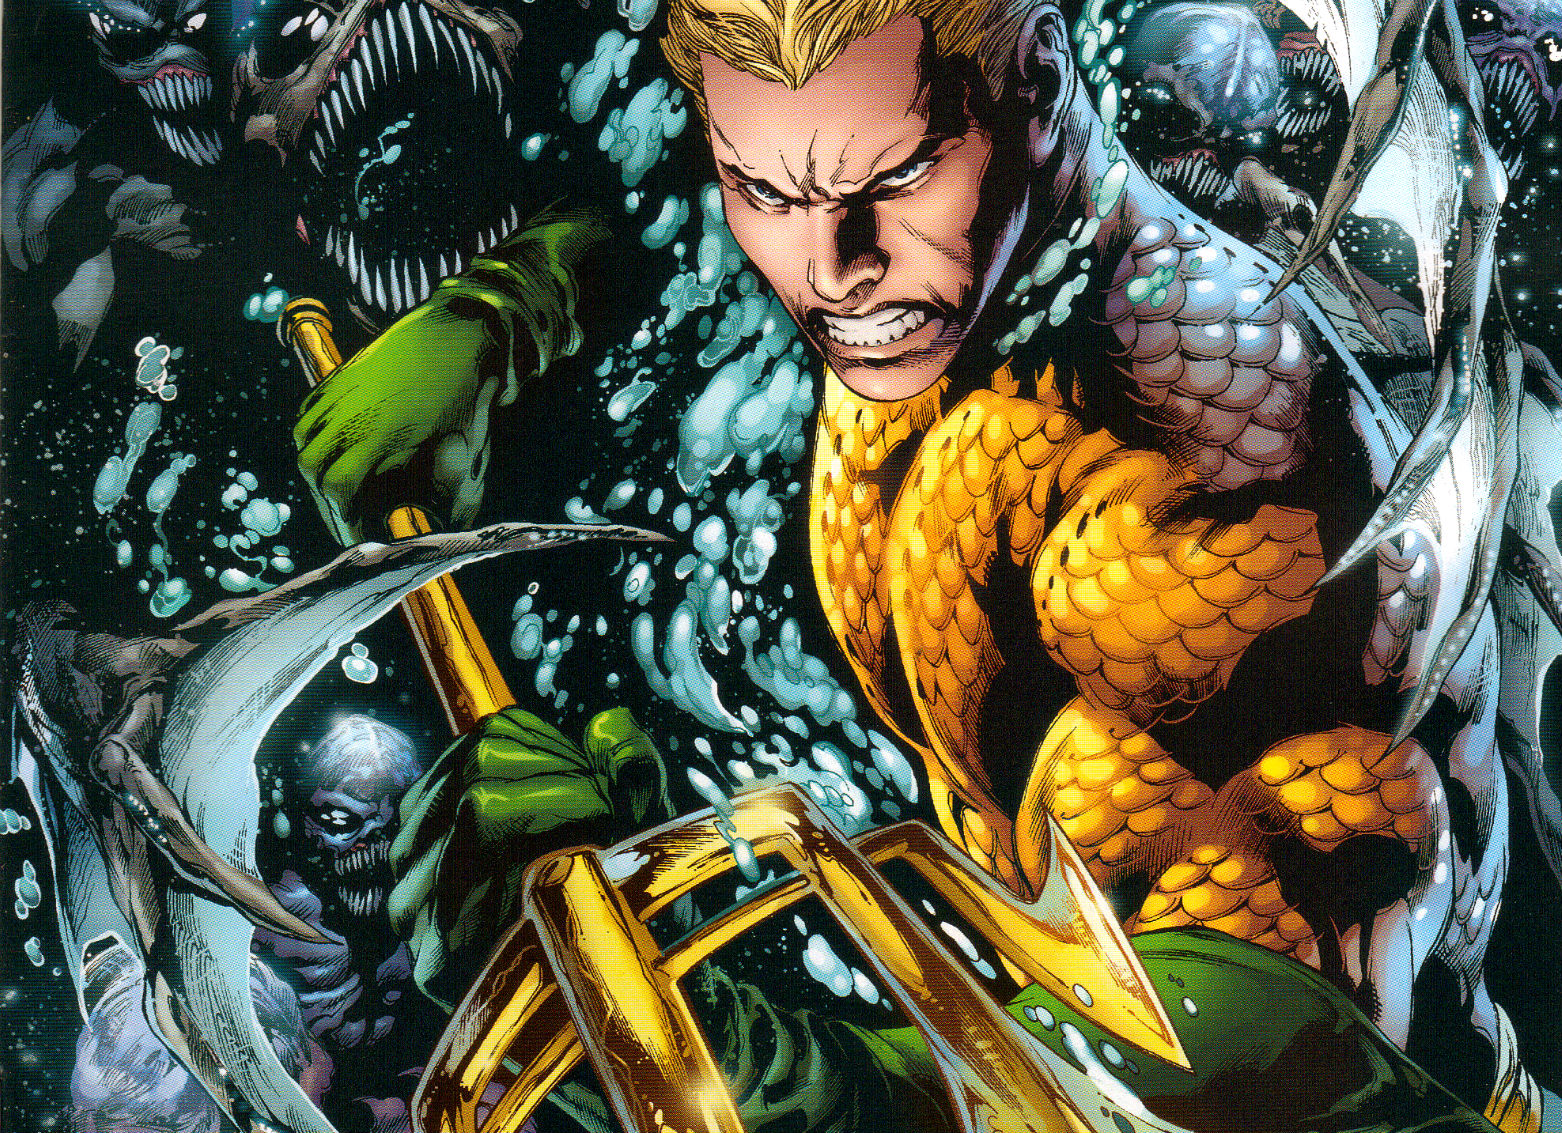 Aquaman dc comics d c superhero jn wallpaper 1562x1133 - Superhero iphone wallpaper hd ...